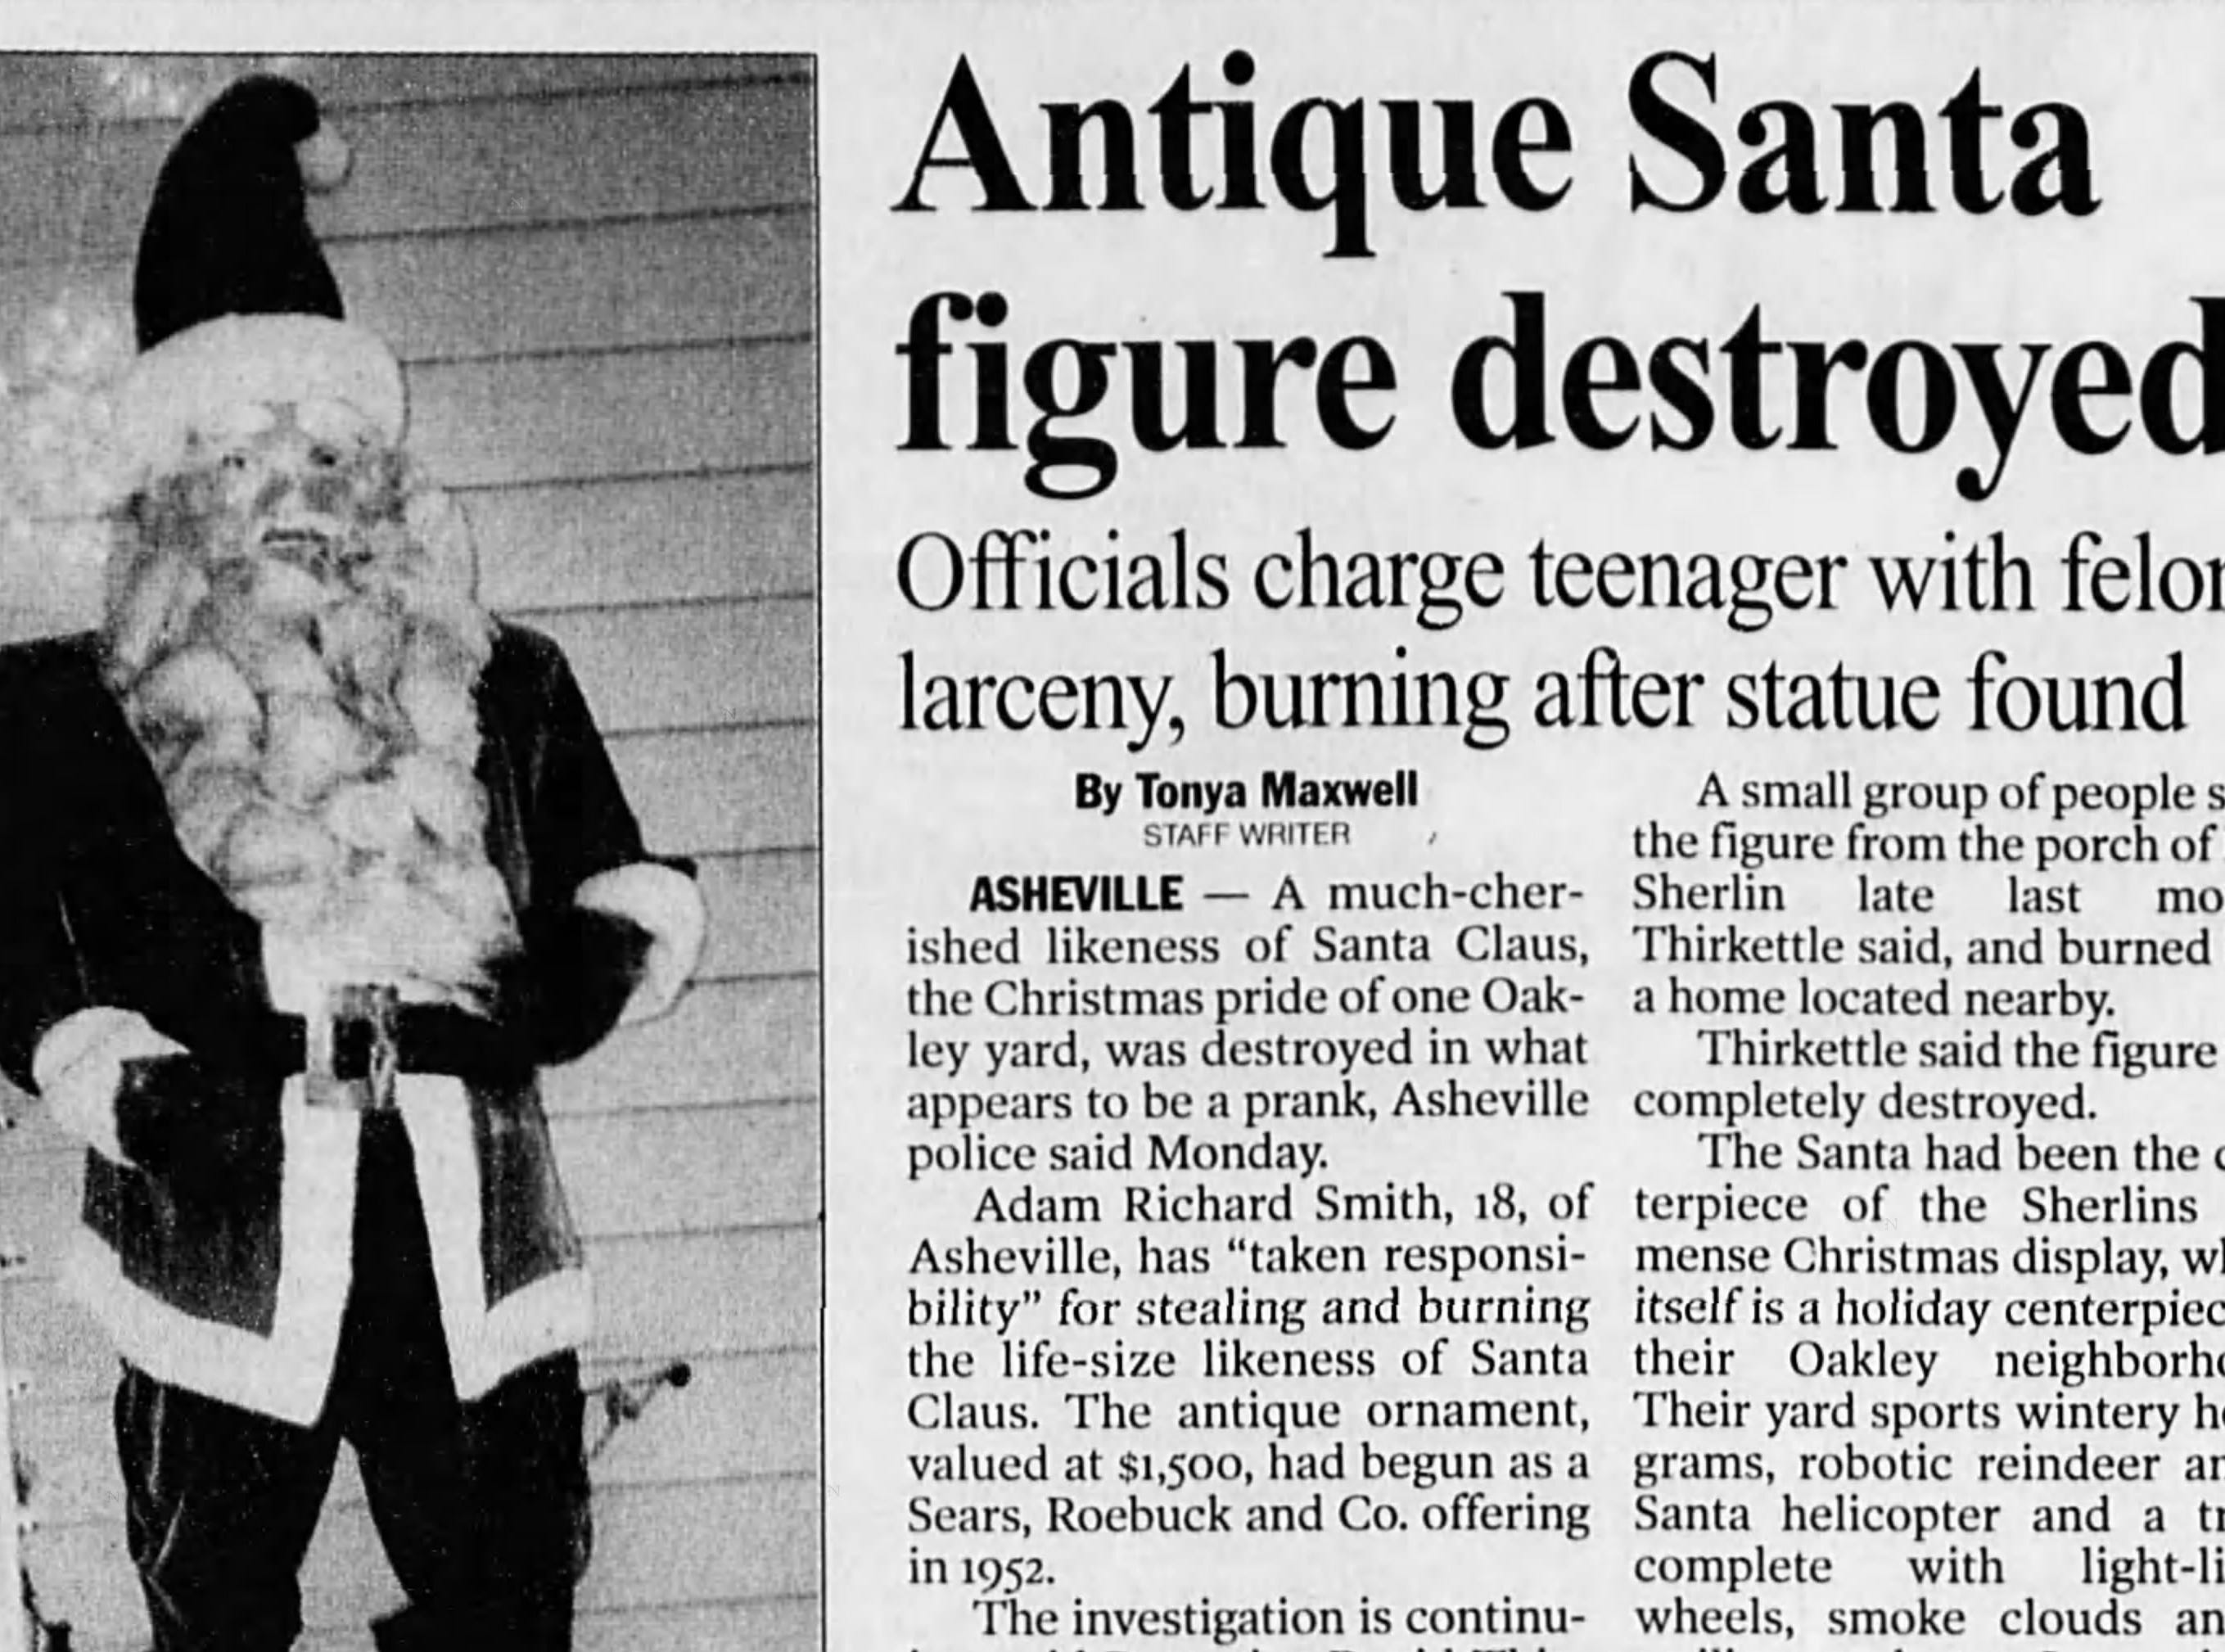 An antique likeness of Santa Claus, valued at $1,780, was stolen from the porch of Ken Sherlin in late November 2002. It was found in early December completely destroyed. An 18-year-old Asheville resident took responsibility for the crime.